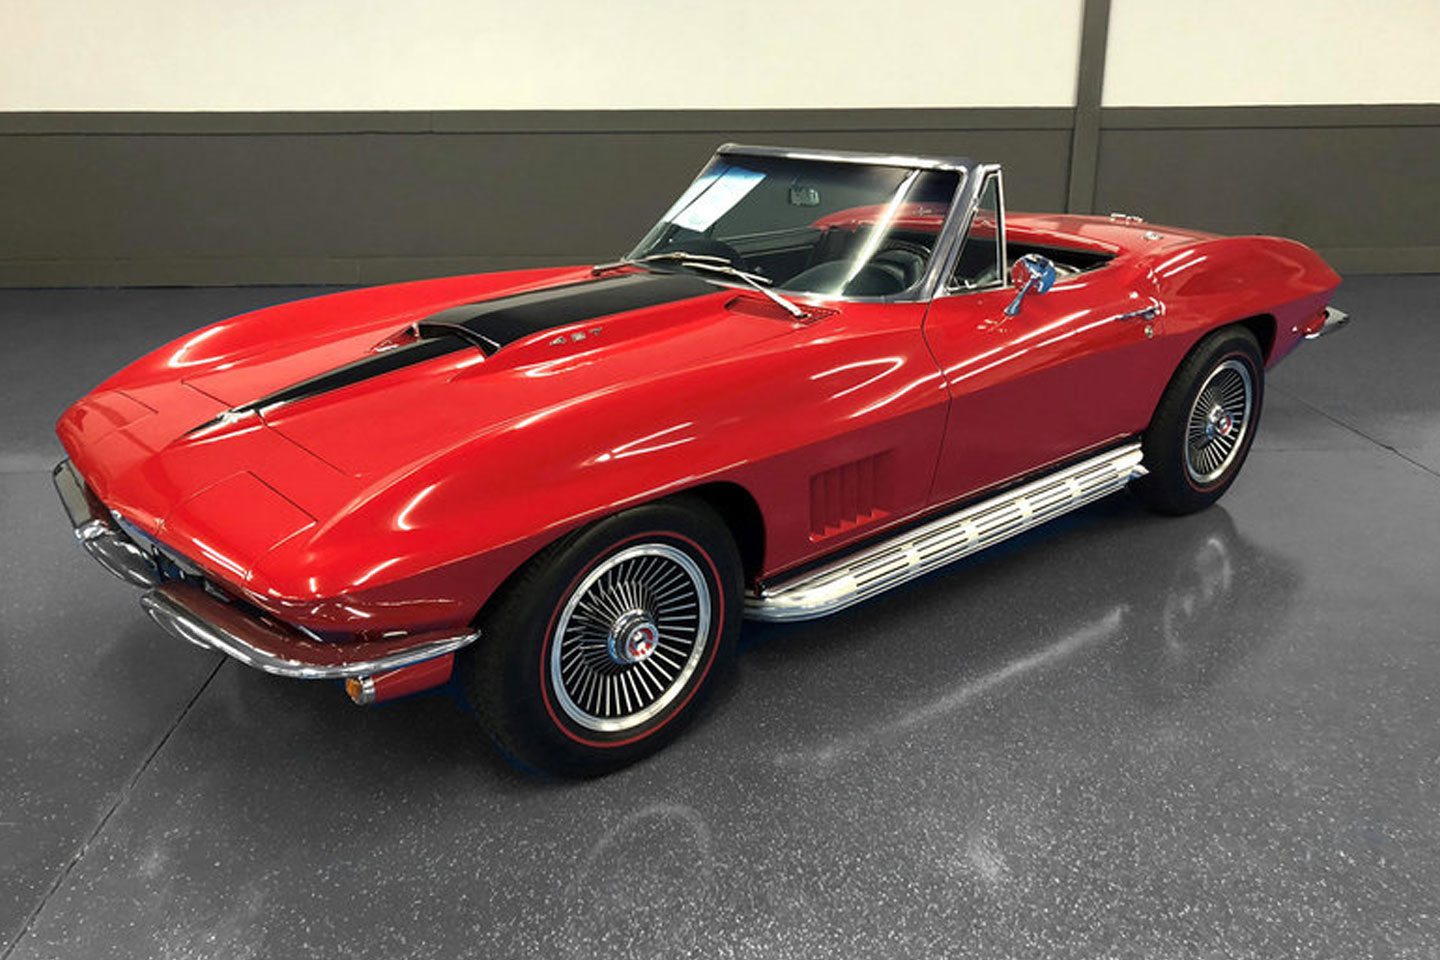 https://cdn2.hubspot.net/hubfs/347760/corvette-leake-auction.jpg